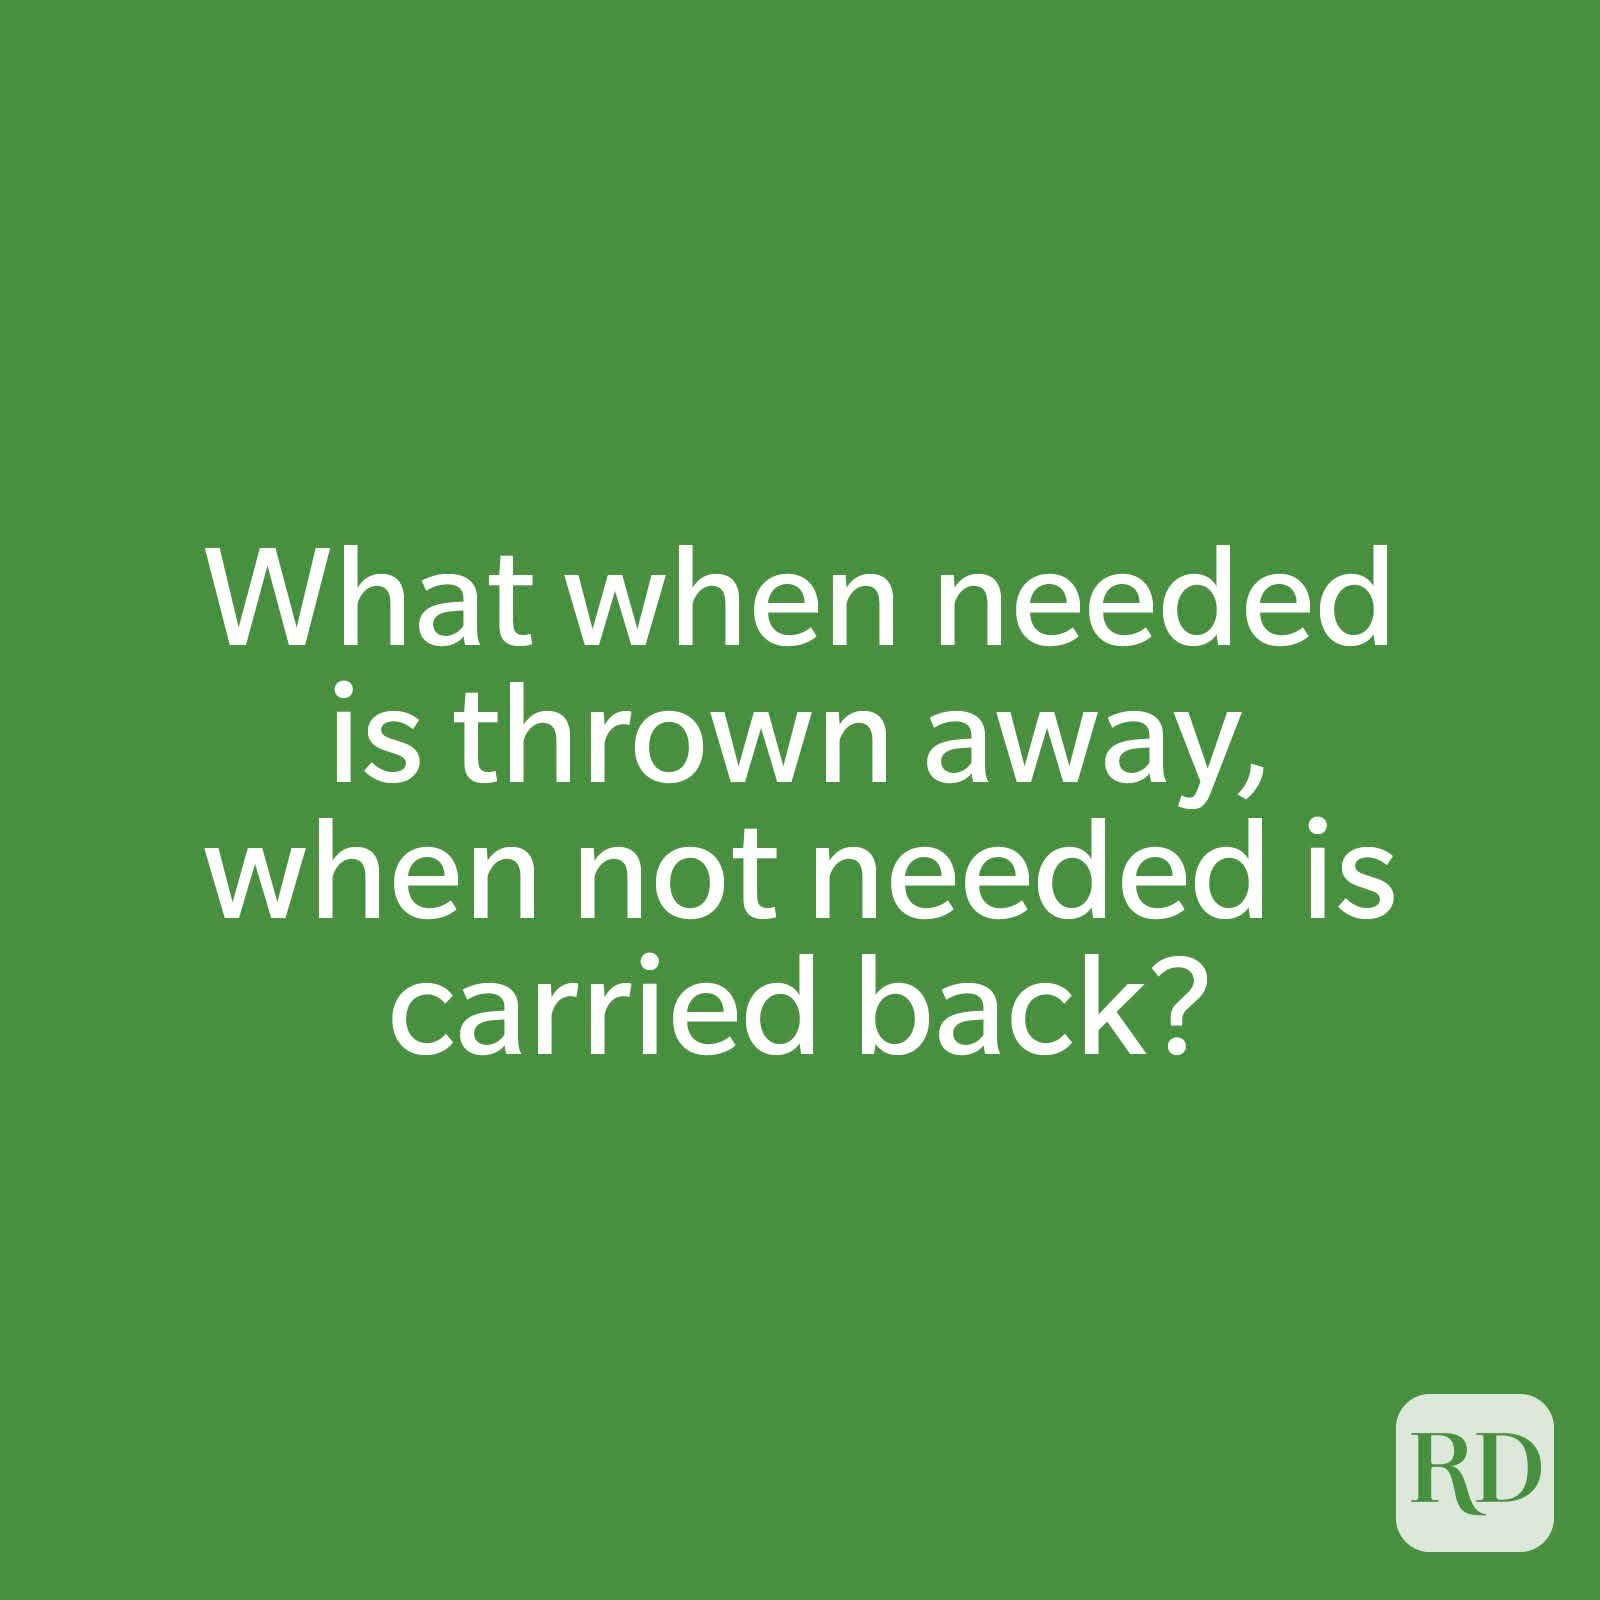 What when needed is thrown away, when not needed is carried back?